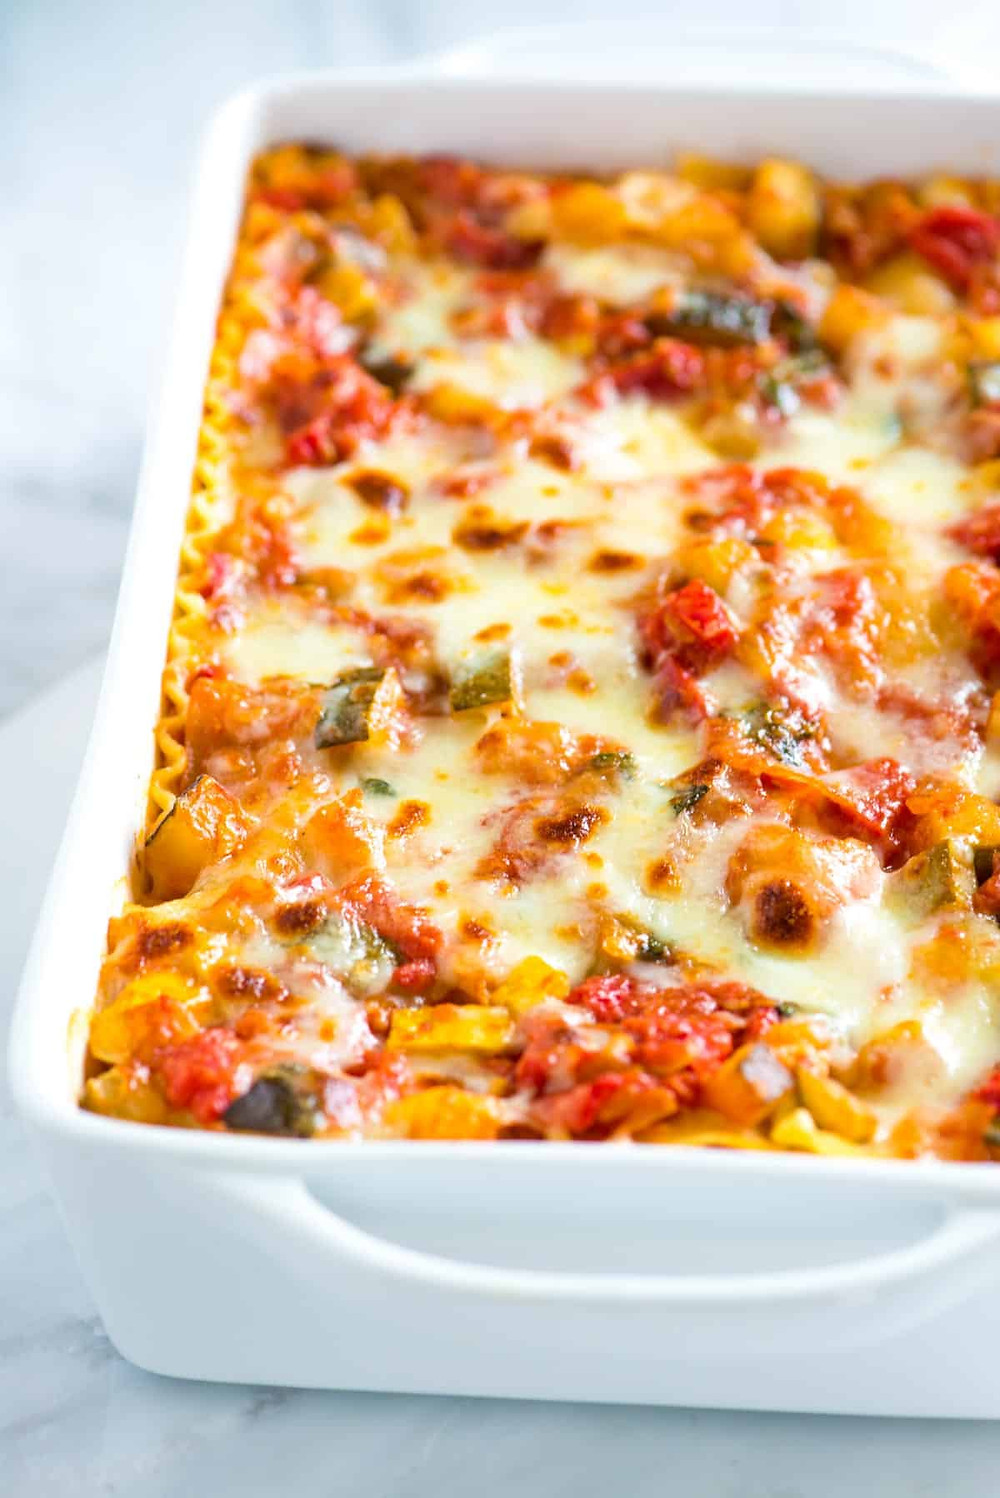 vegetable lasagna is an easy meal to make for the family without meat